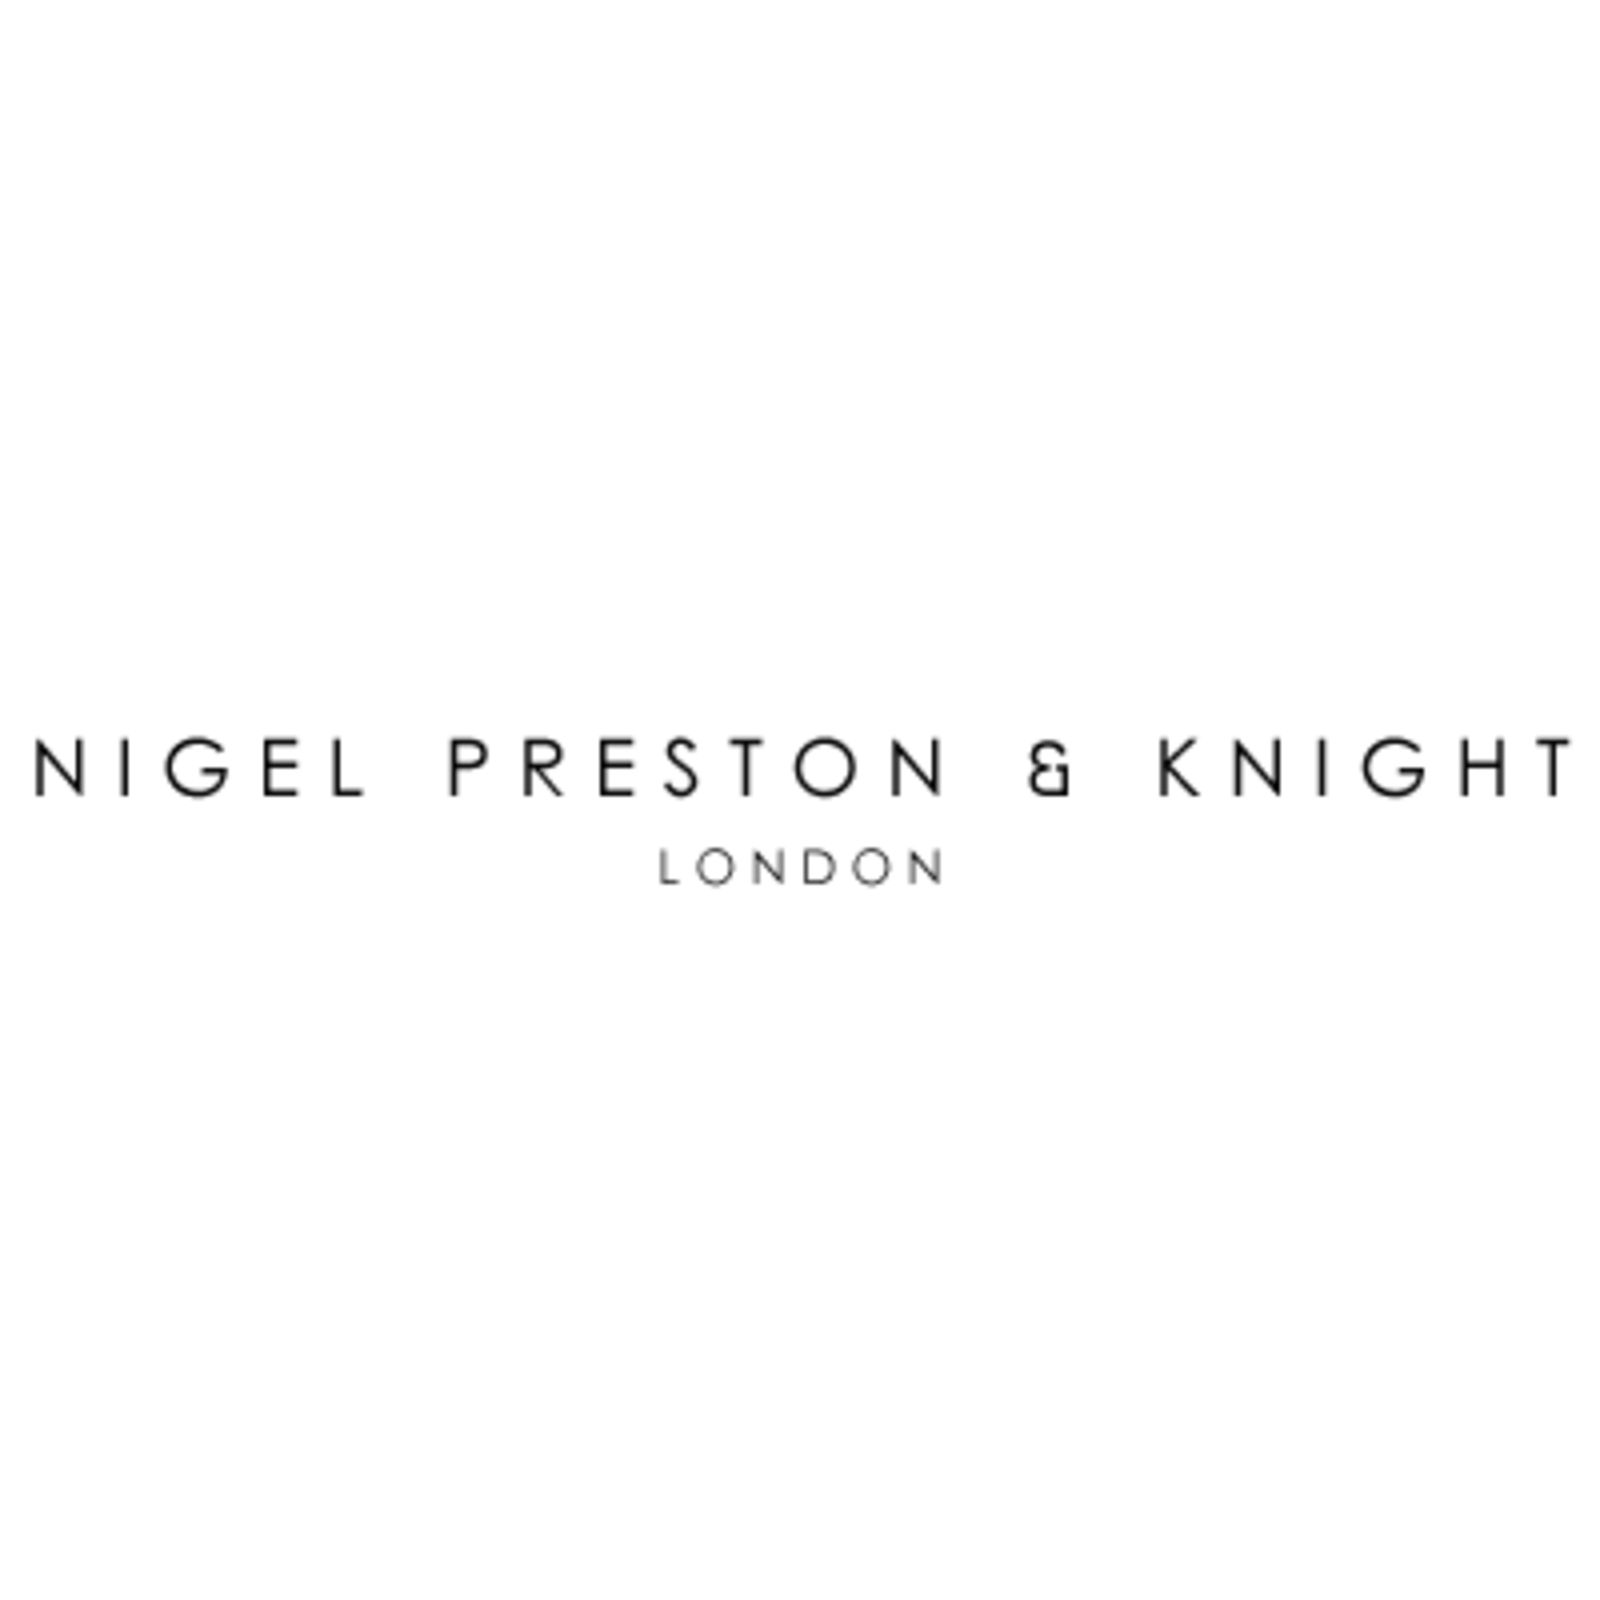 NIGEL PRESTON & KNIGHT